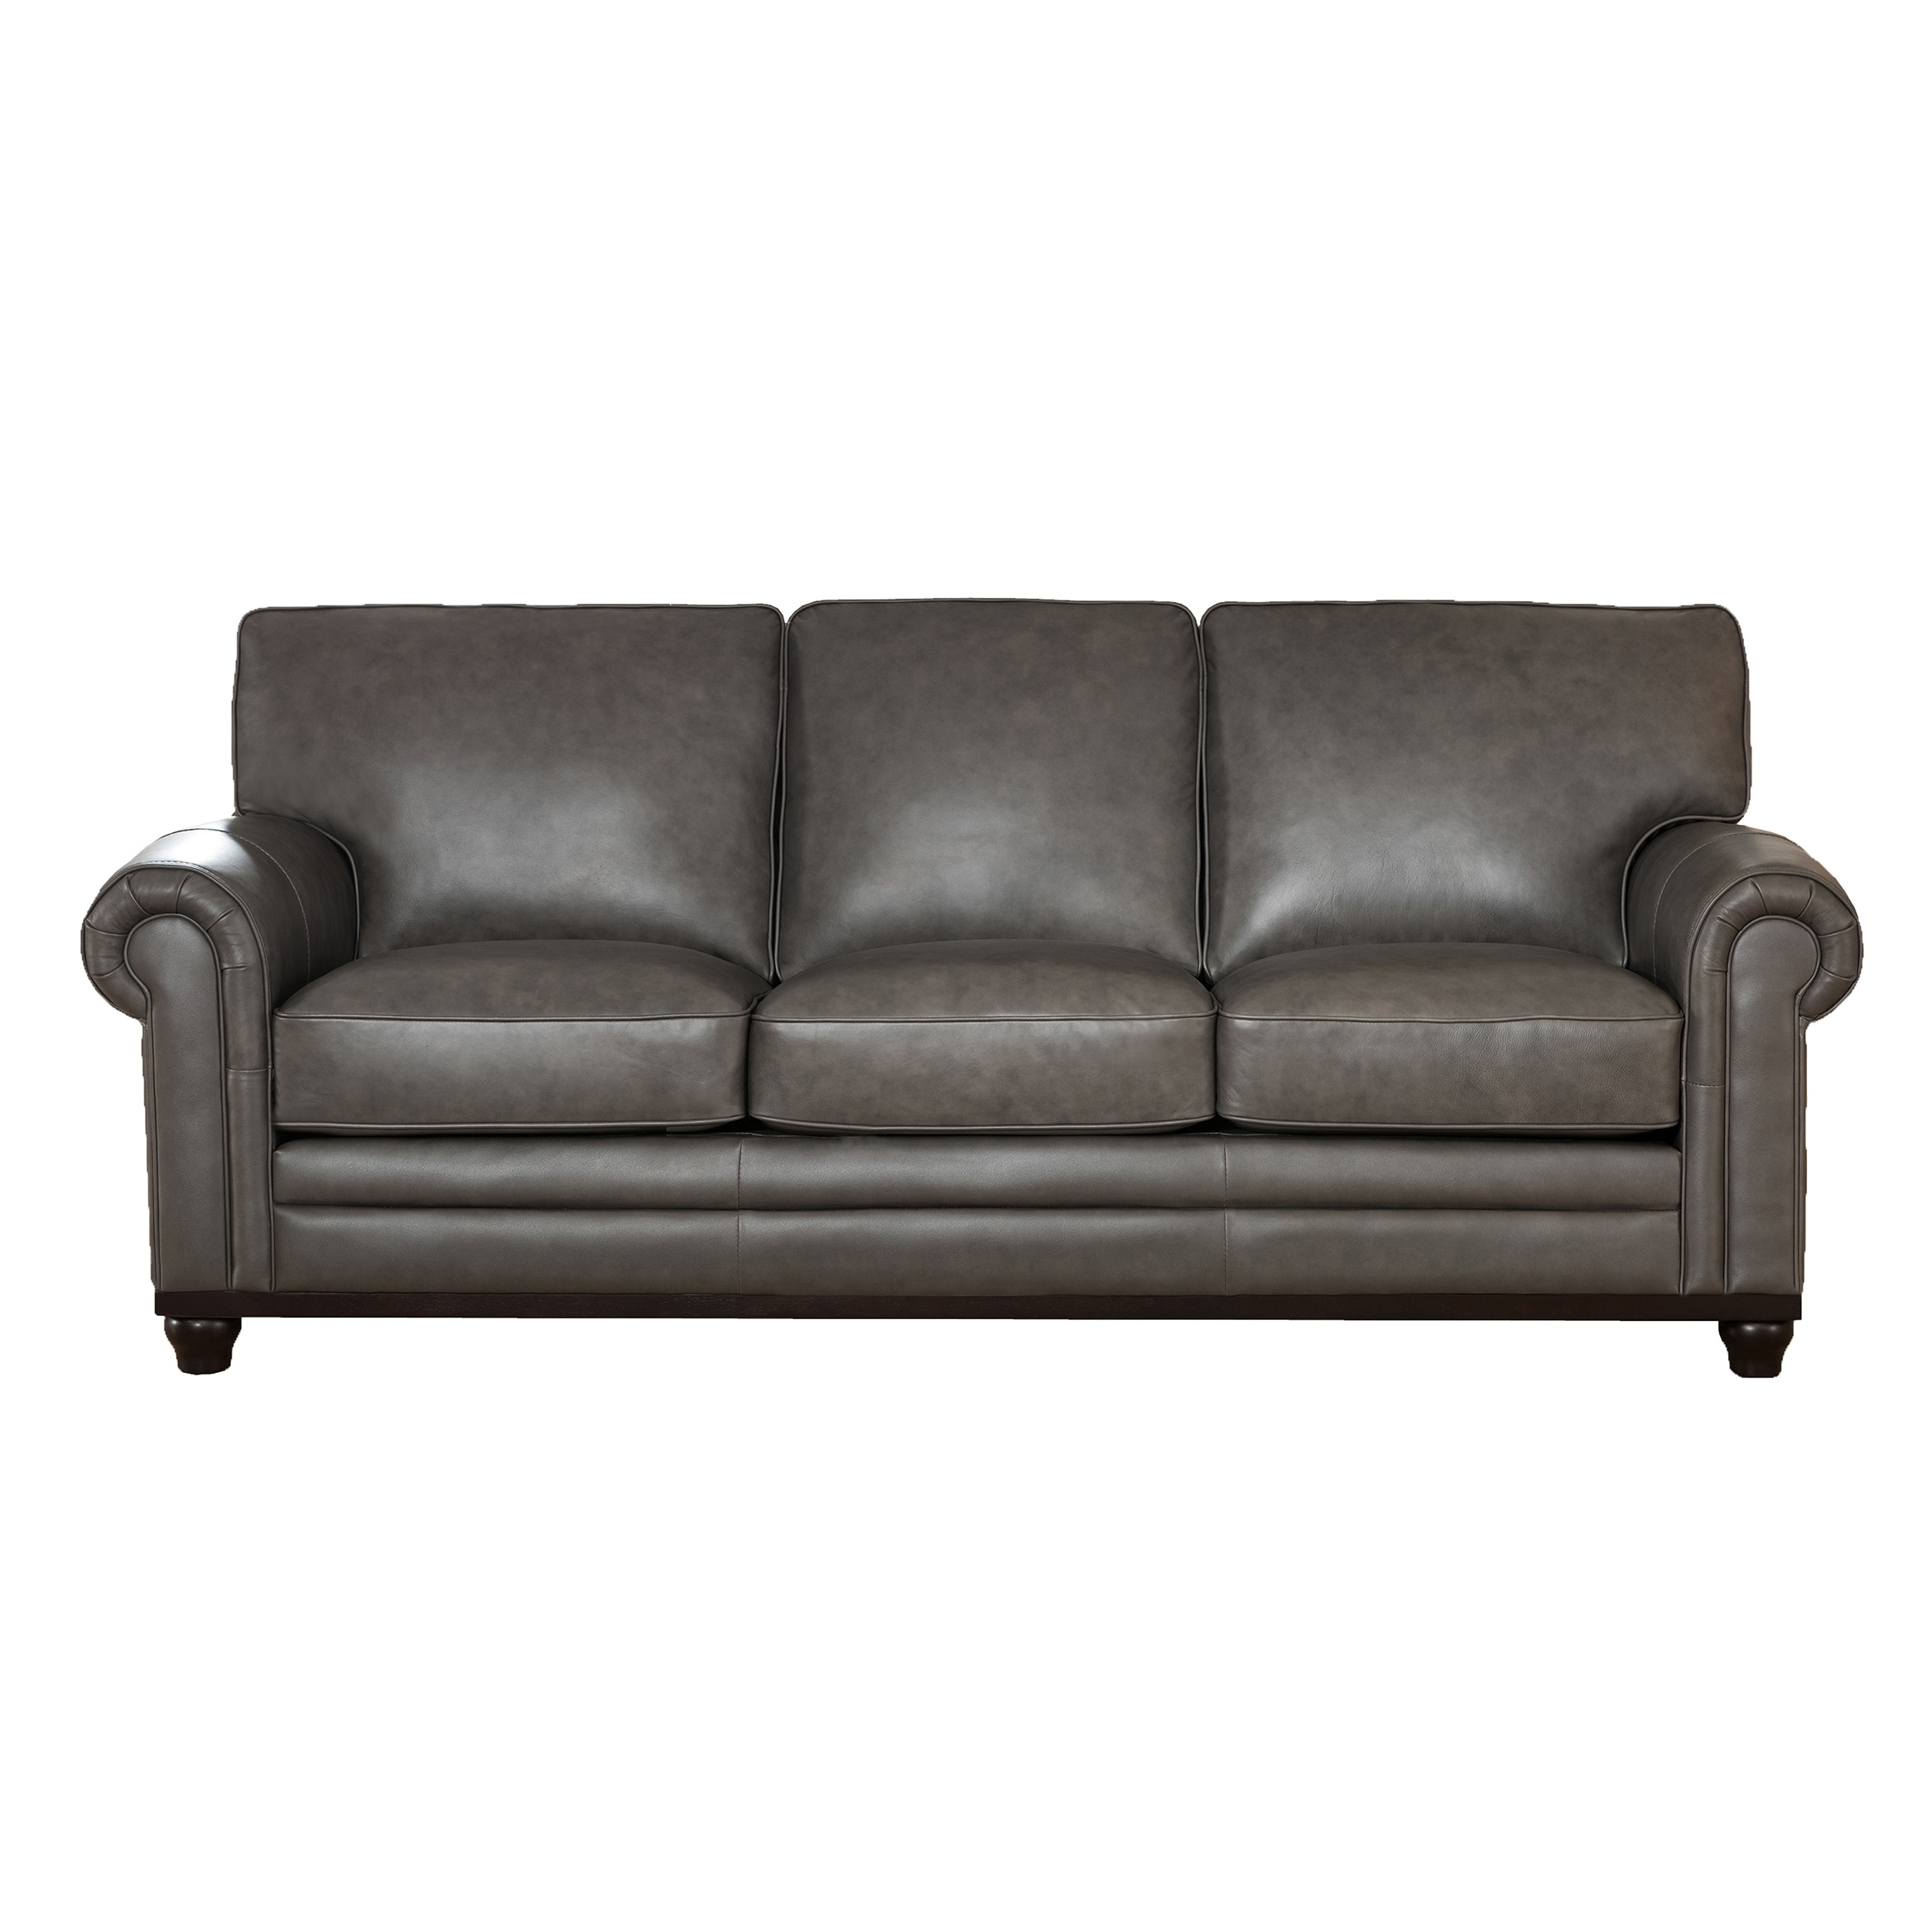 Attrayant Stafford Top Grain Grey Leather Sofa   Free Shipping Today   Overstock.com    20205810